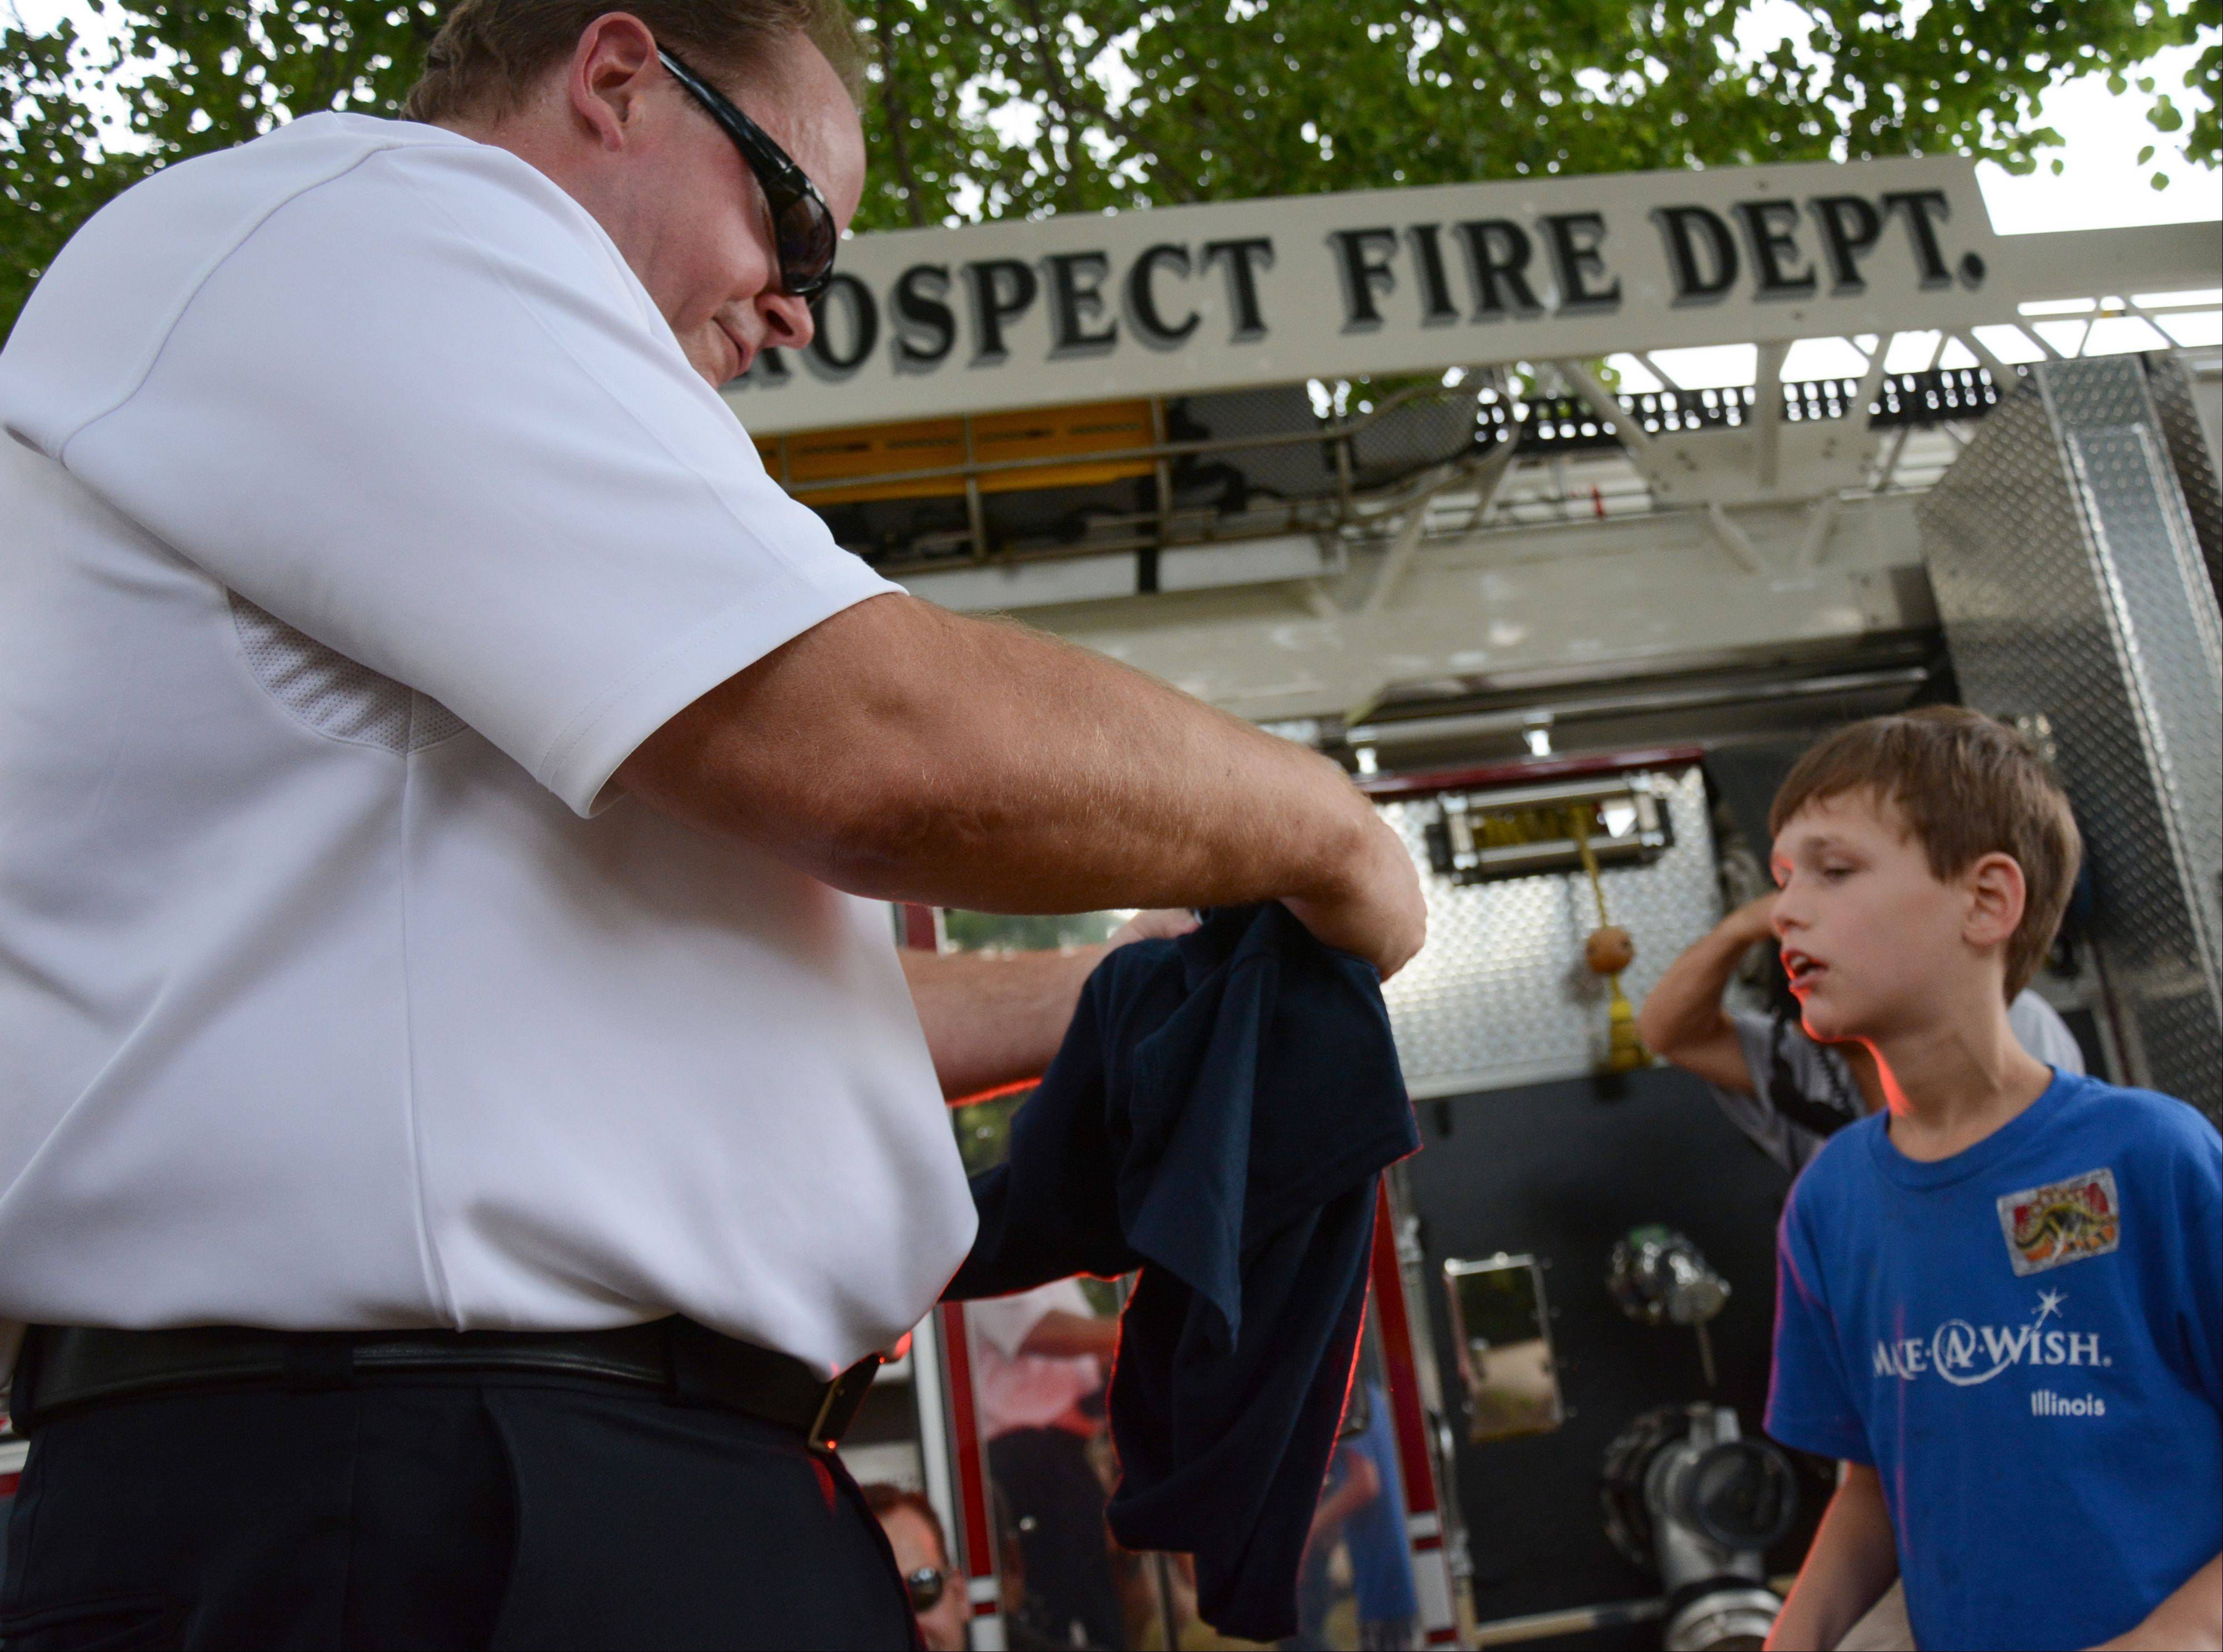 Mount Prospect Fire Chief John Malcolm presents Zachary Jakubowski, 11, of Mount Prospect an official fire department T-shirt during a visit Friday.